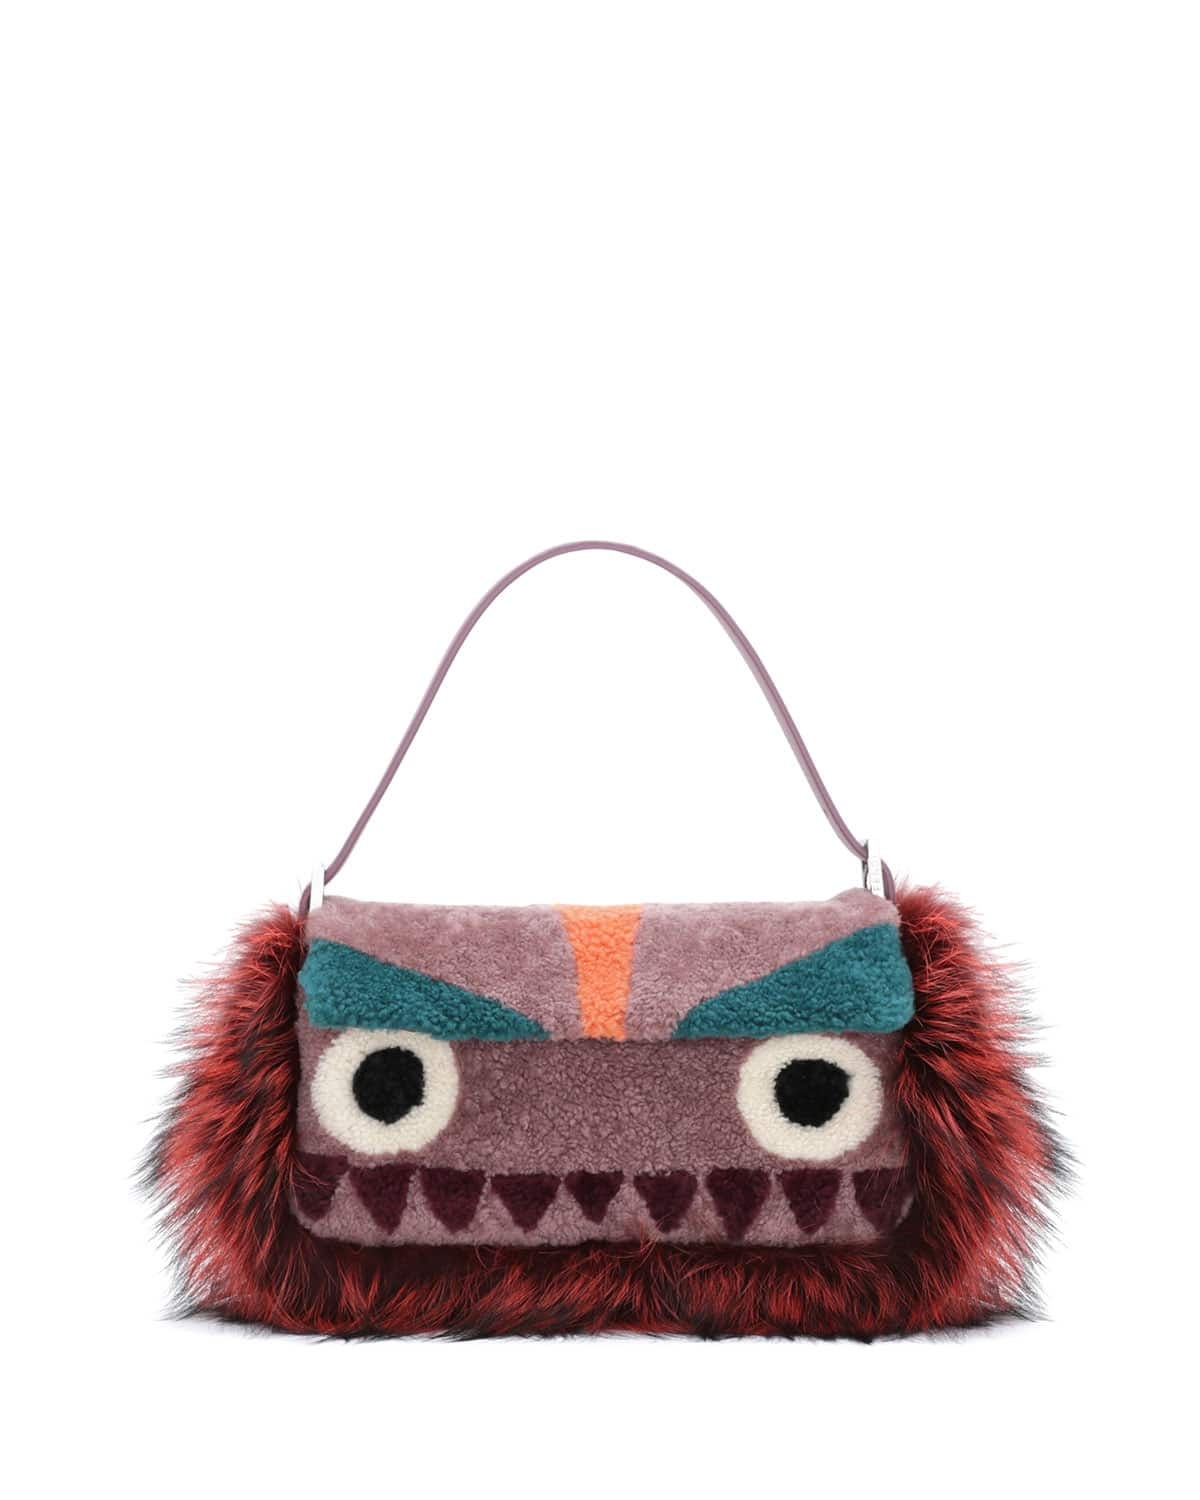 cda5295e398d Fendi Pre-Fall 2014 Bag Collection featuring New Fur Monsters ...